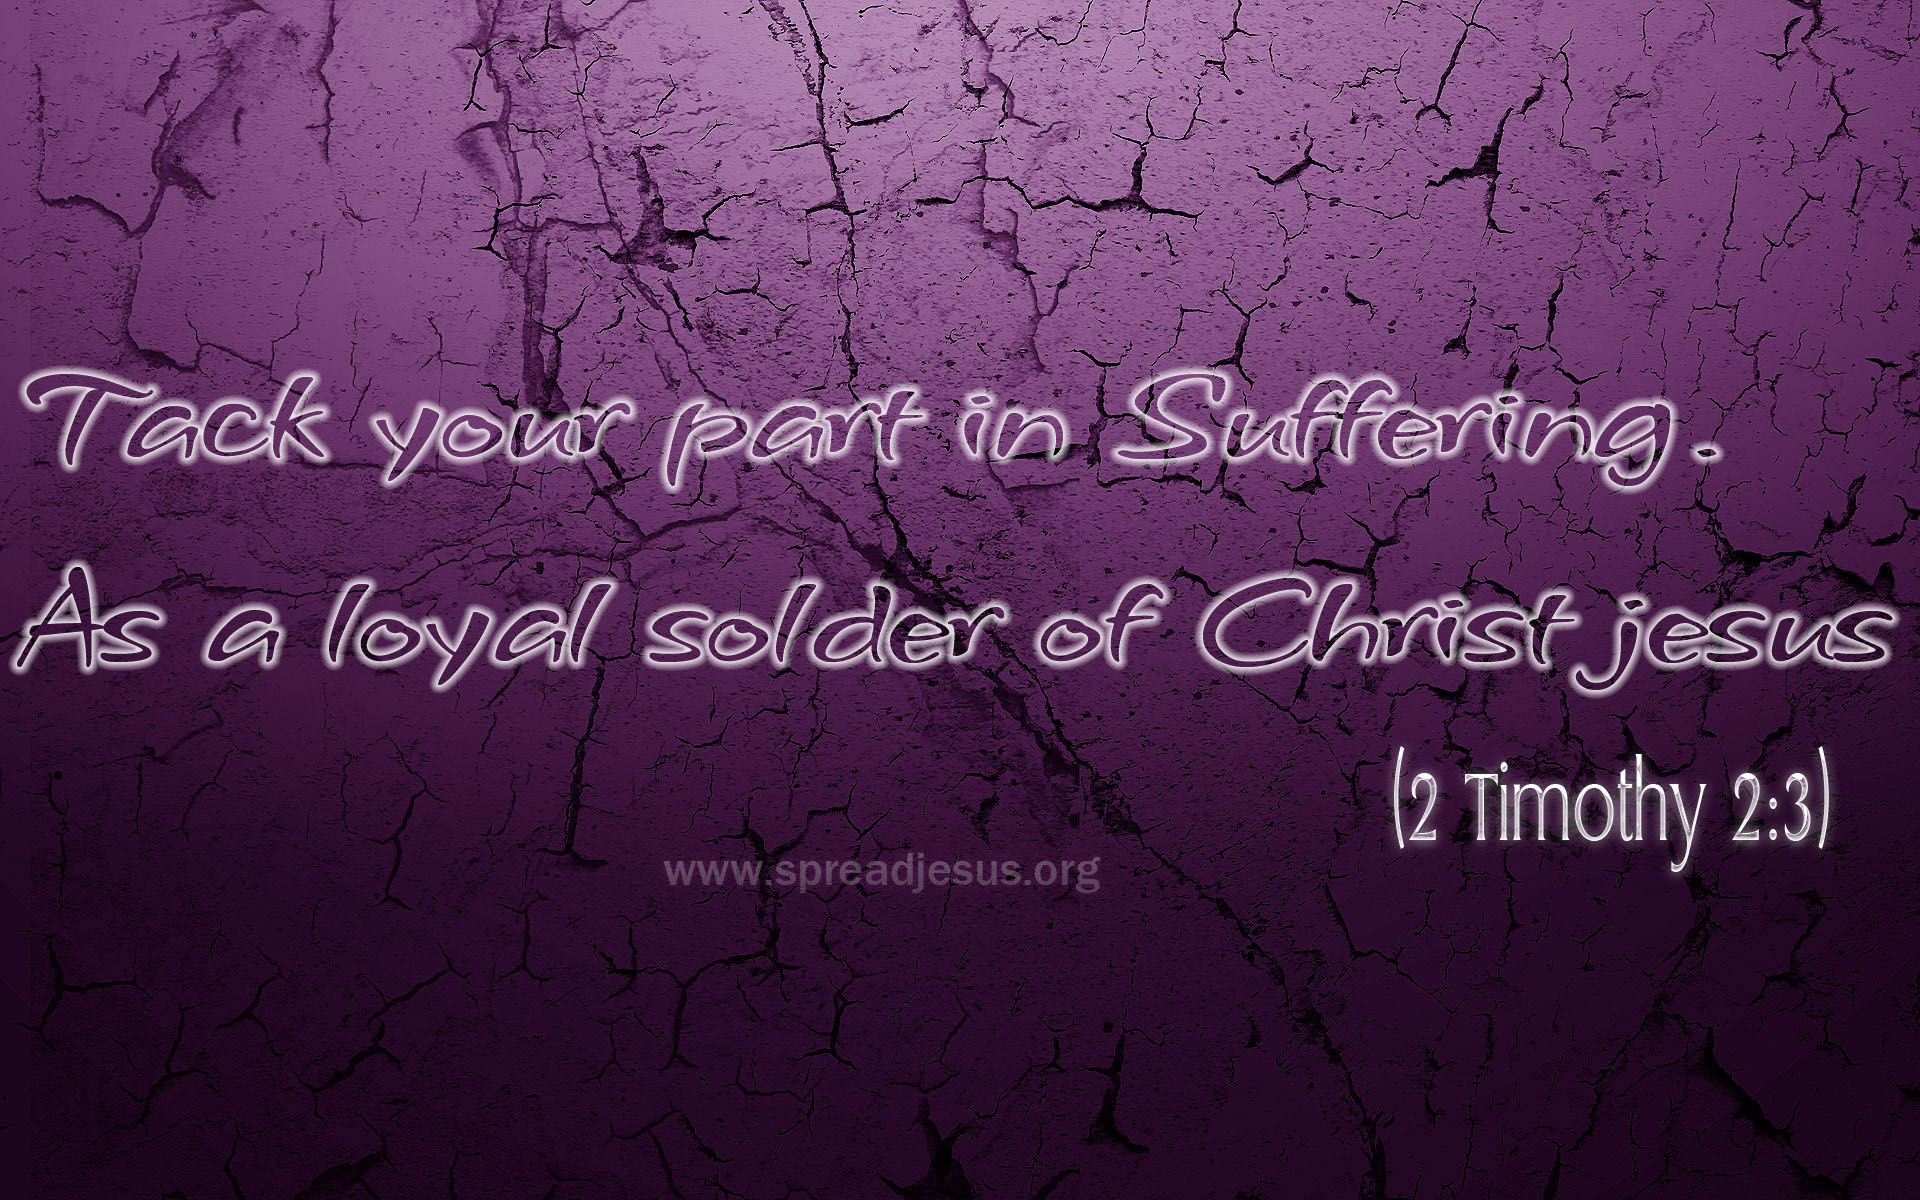 2 TIMOTHY 2:3-Bible Quotes HD-WALLPAPERS DOWNLOAD,Bible Quotes-2 TIMOTHY 2:3>Tack your part in Suffering. As a loyal solder of Christ jesus (2 TIMOTHY 2:3)